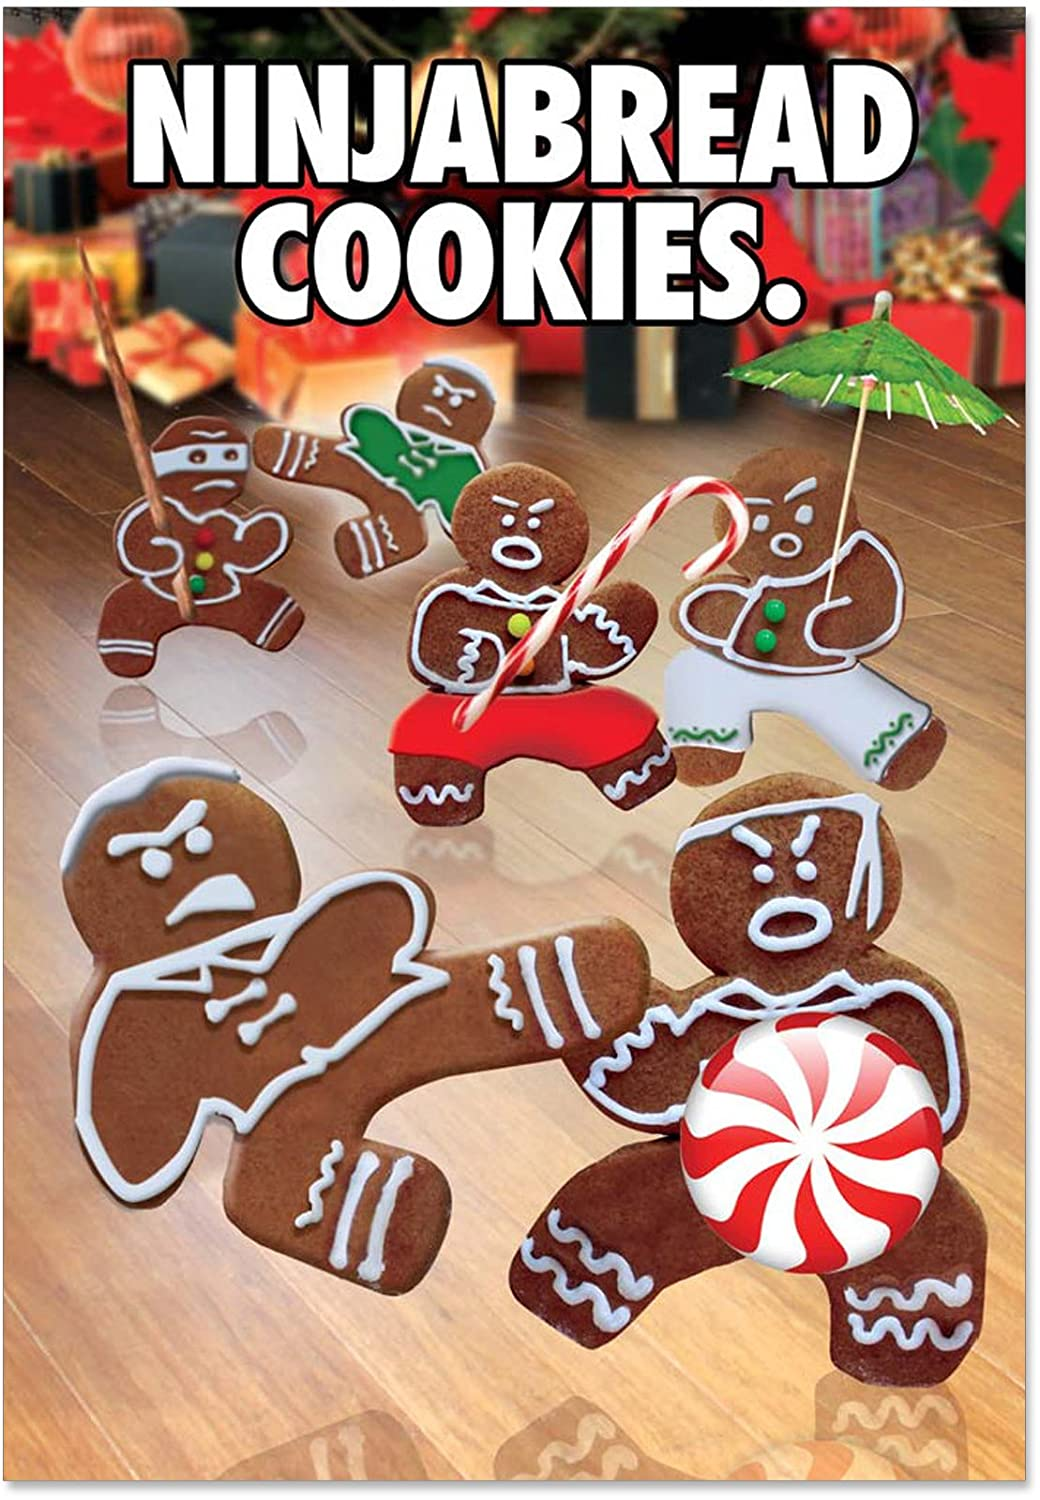 12 'Ninjabread Cookies' Boxed Christmas Cards with Envelopes 4.63 x 6.75 inch, Hilarious Gingerbread Men Doing Martial Arts Holiday Notes, Gingerbread Man Kung Fu Fighting Cards, Holiday Humor B5982